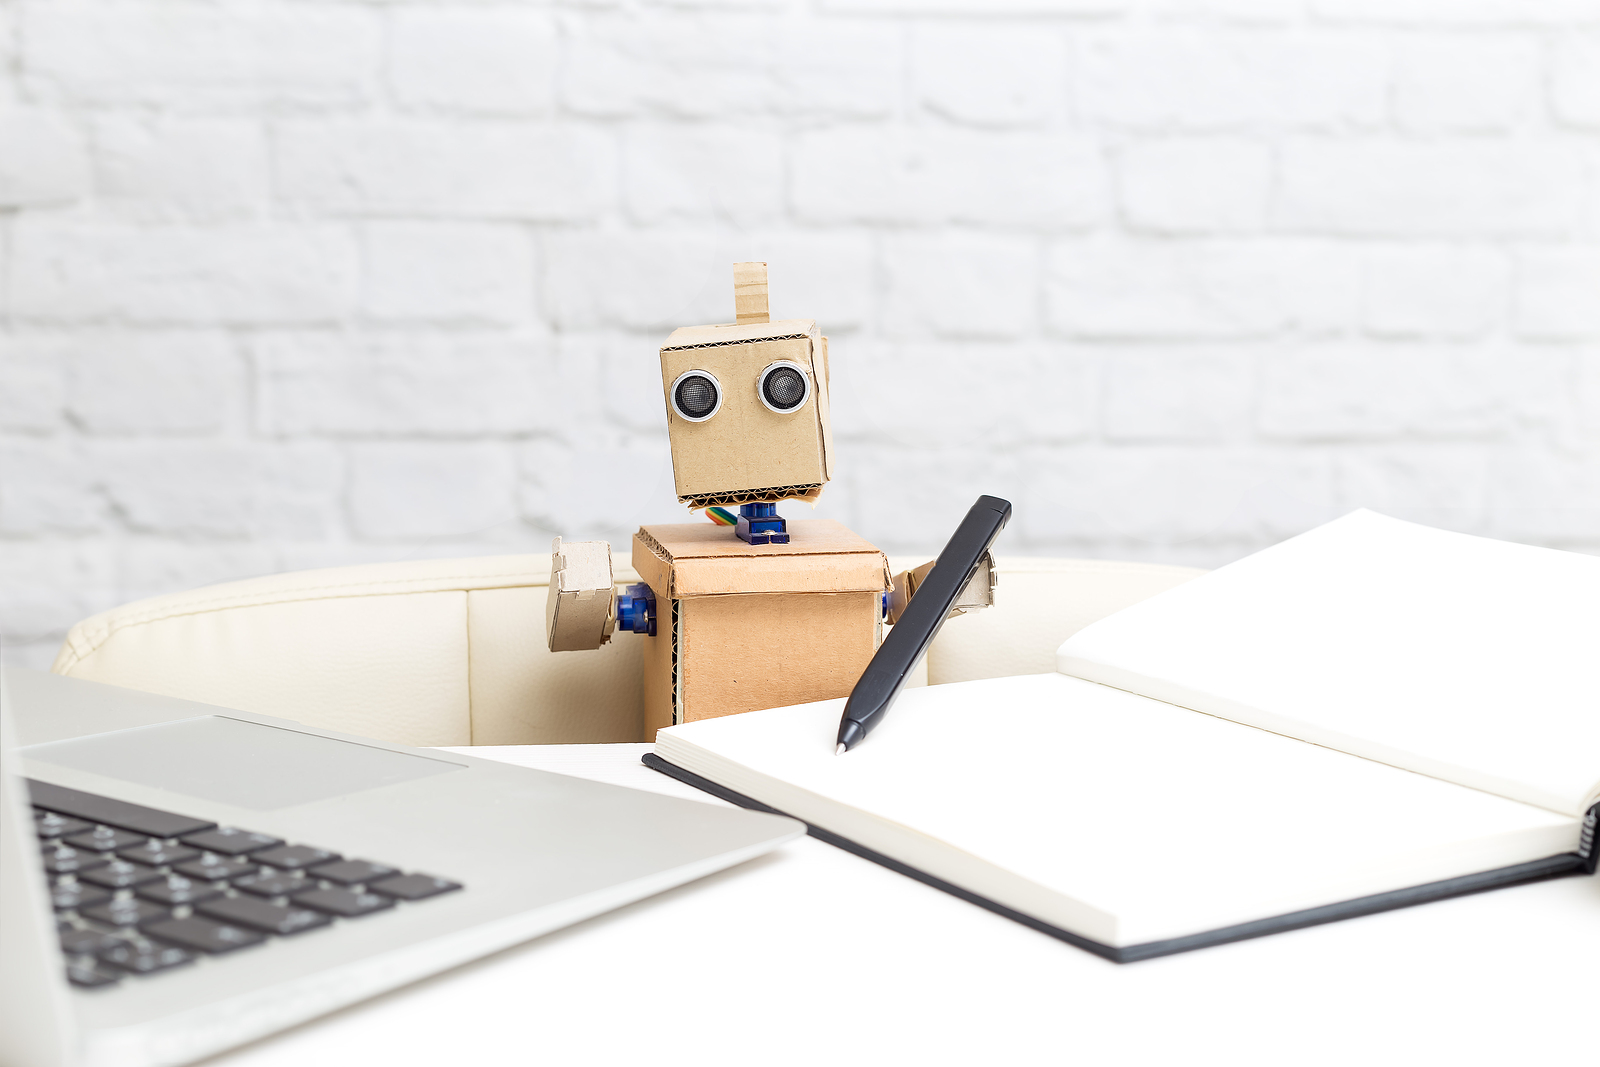 This educational program aims to demystify the perception that the study of AI is complicated and exclusive to those who master math or programming. - Photo: Bigstock.com